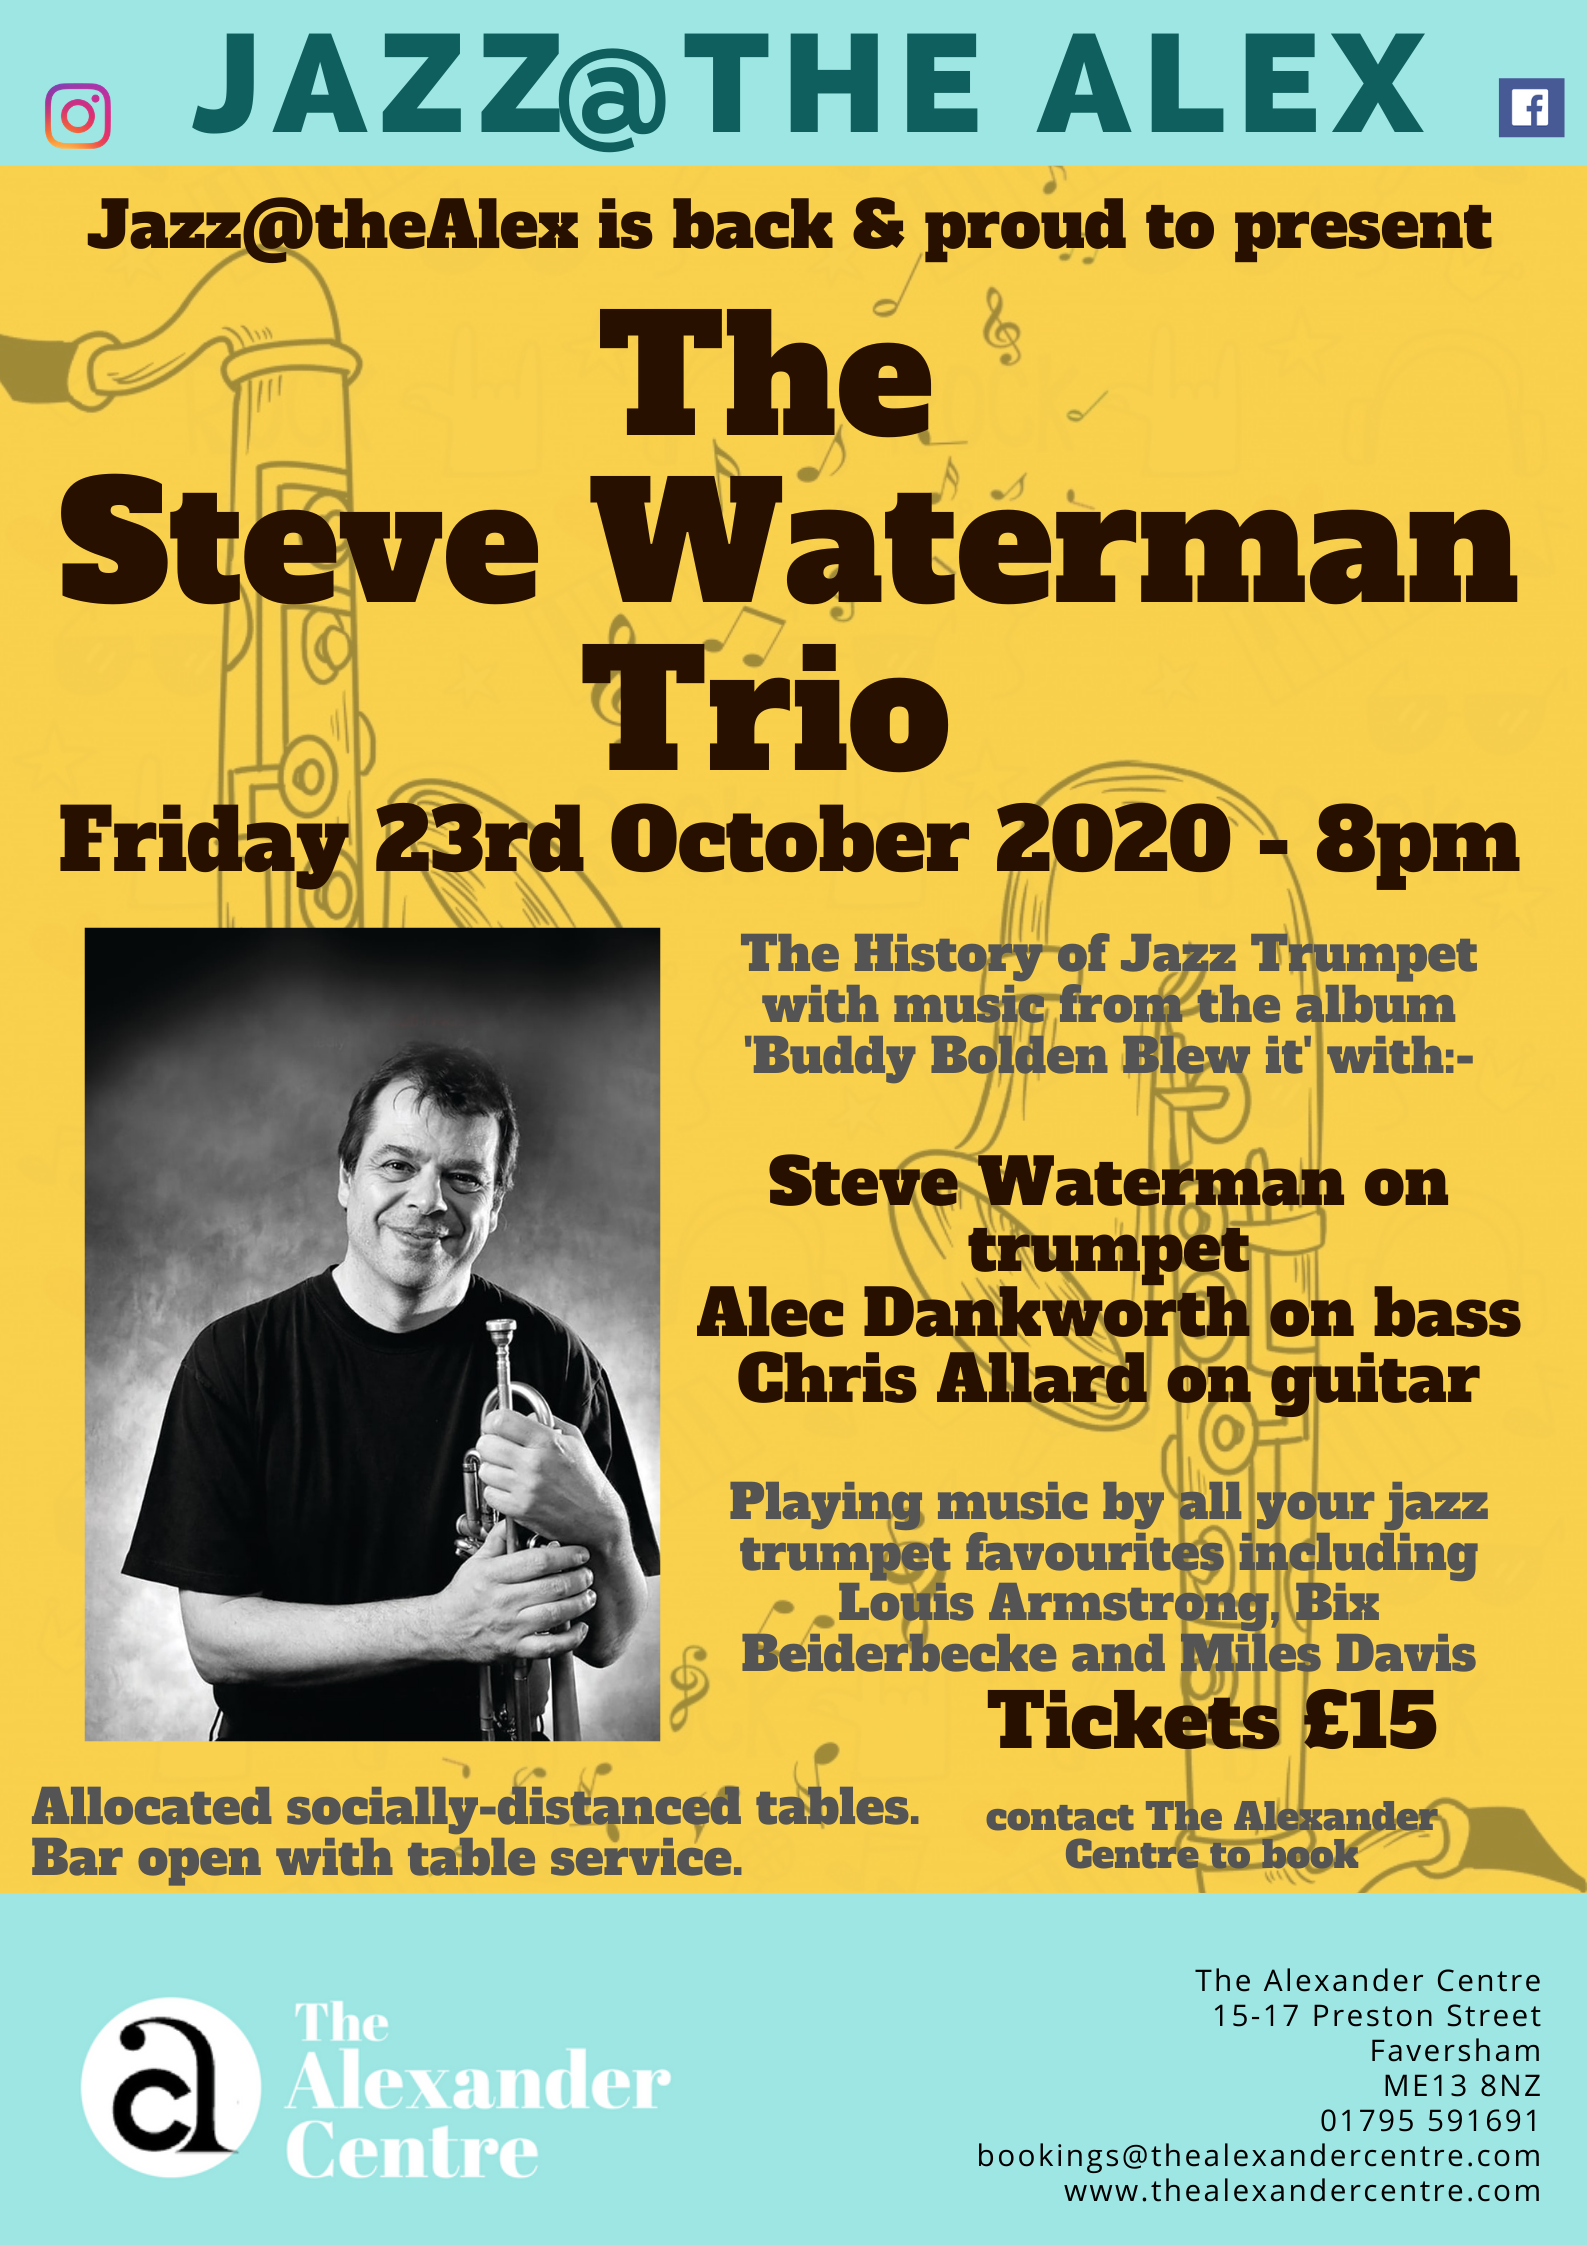 Jazz@theAlex: Steve Waterman Trio